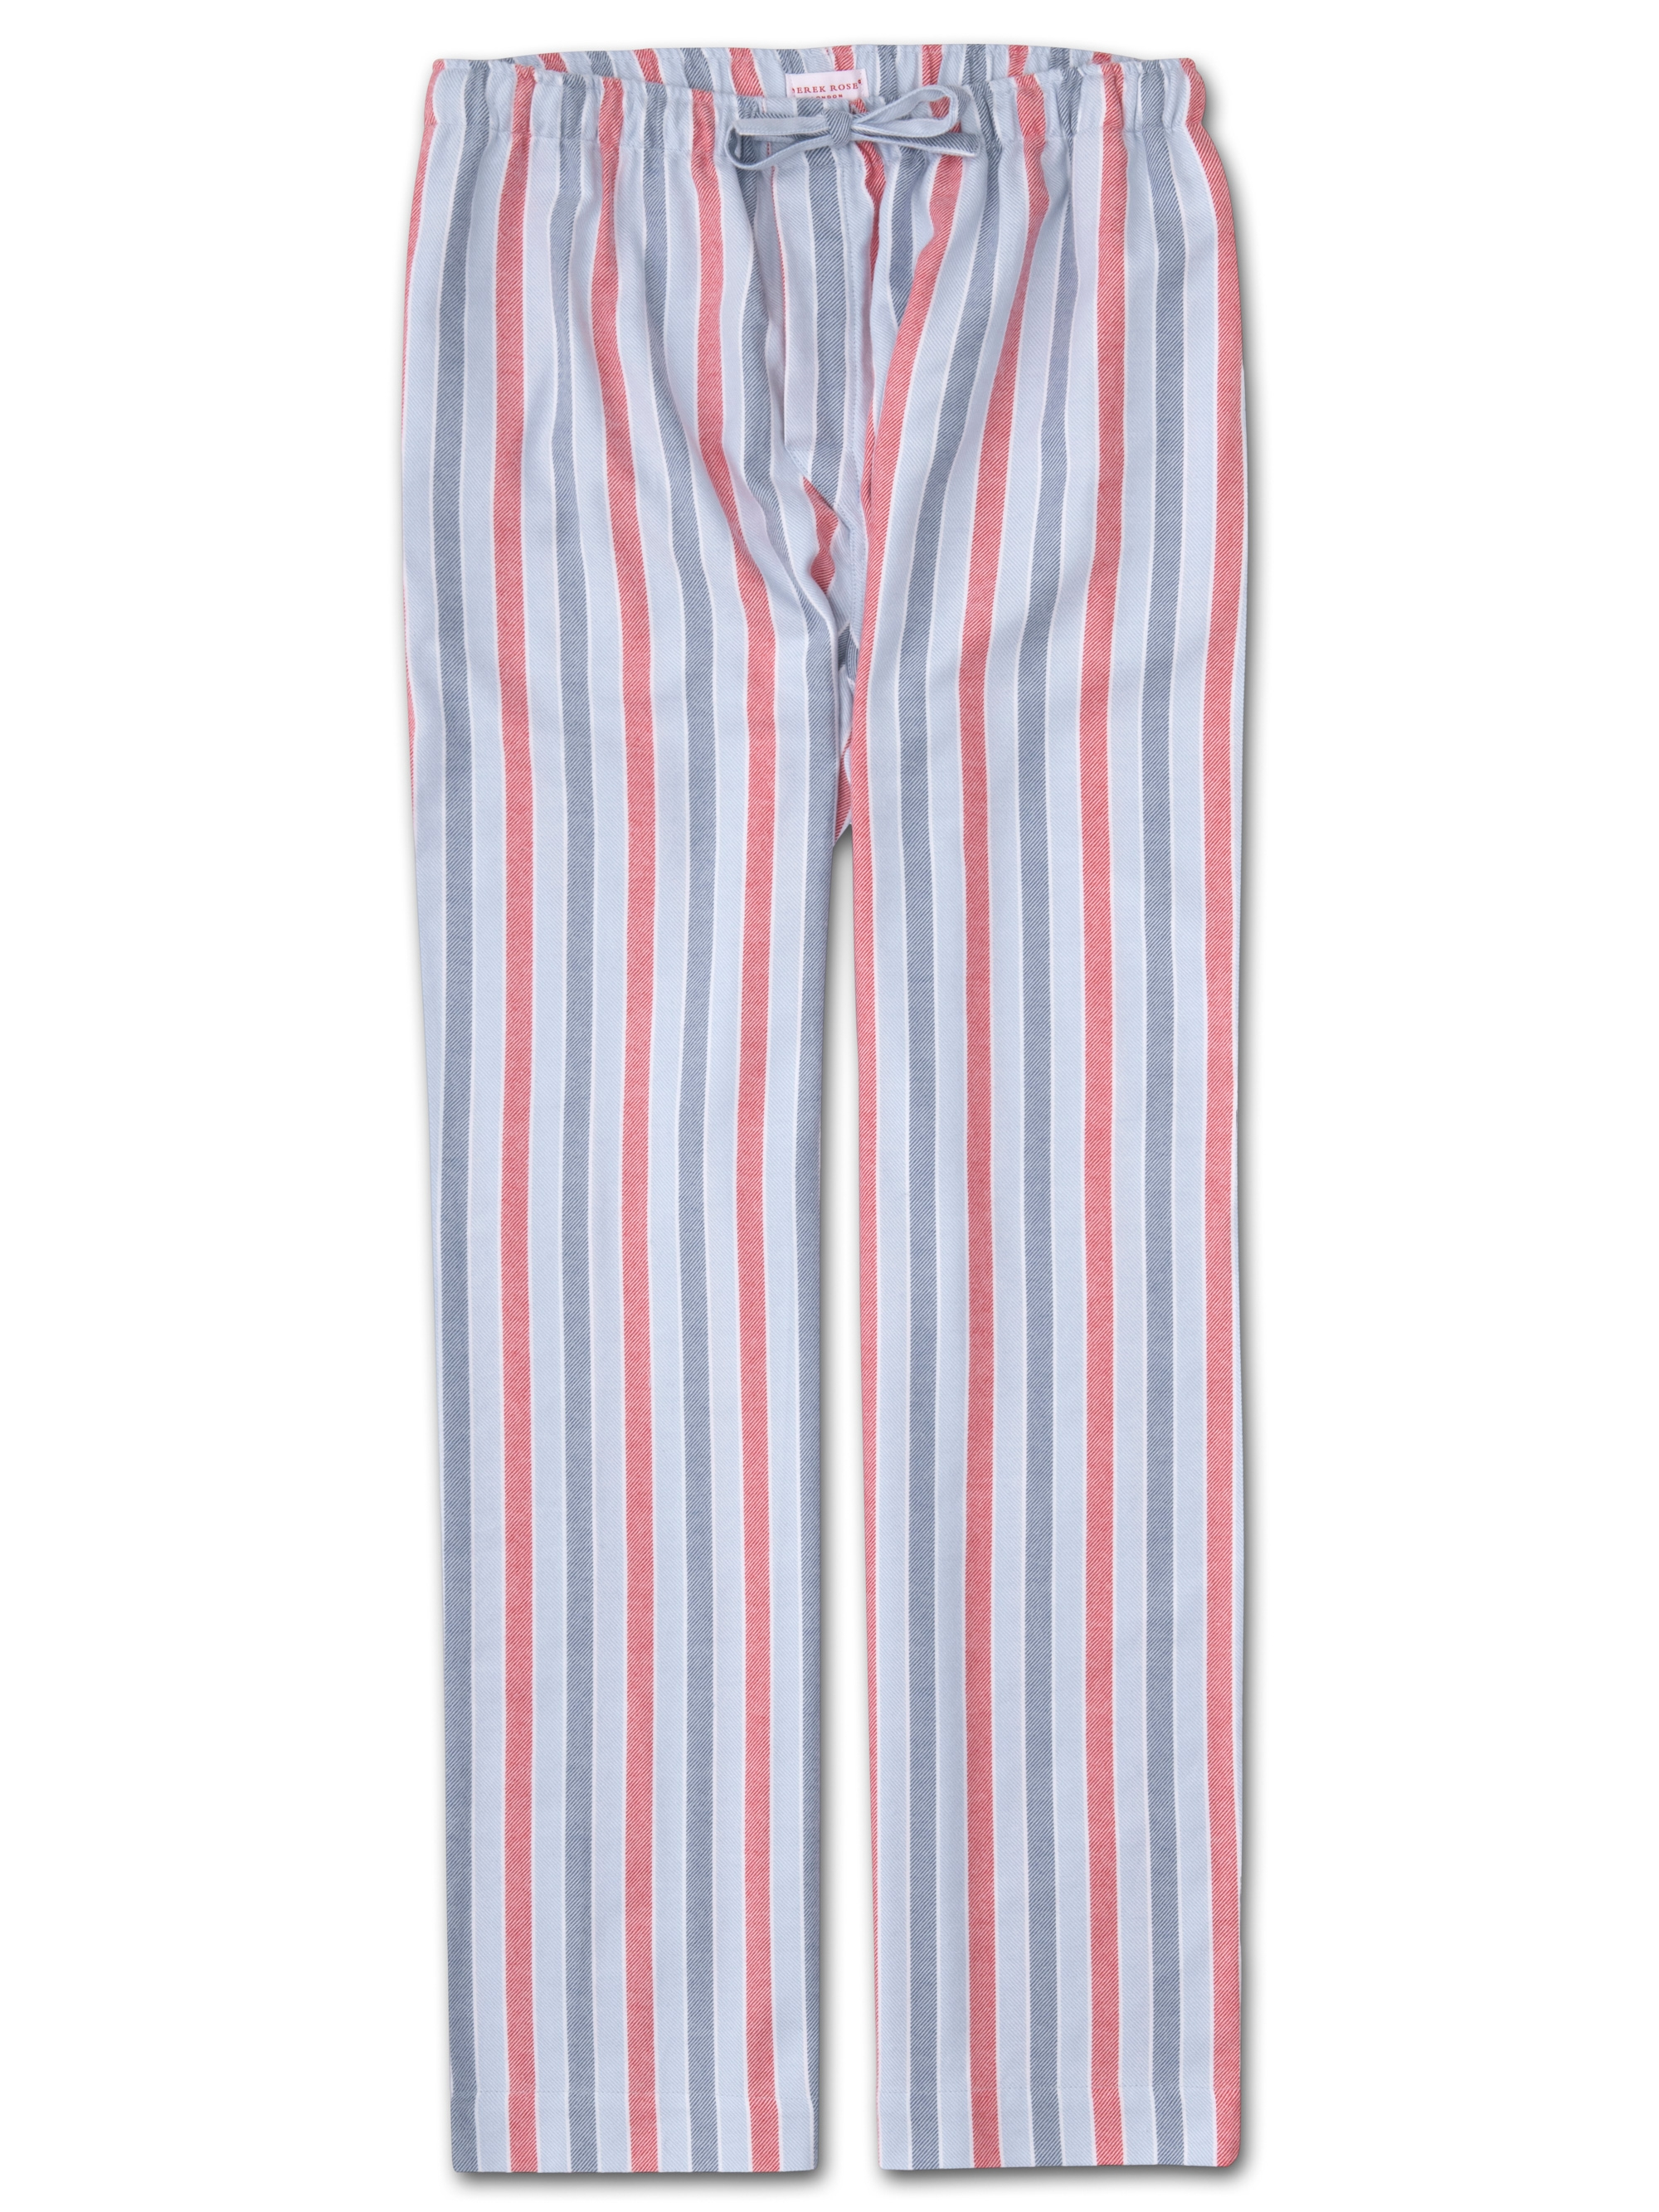 Derek Rose DEREK ROSE MEN'S LOUNGE TROUSERS KELBURN 11 BRUSHED COTTON STRIPE BLUE